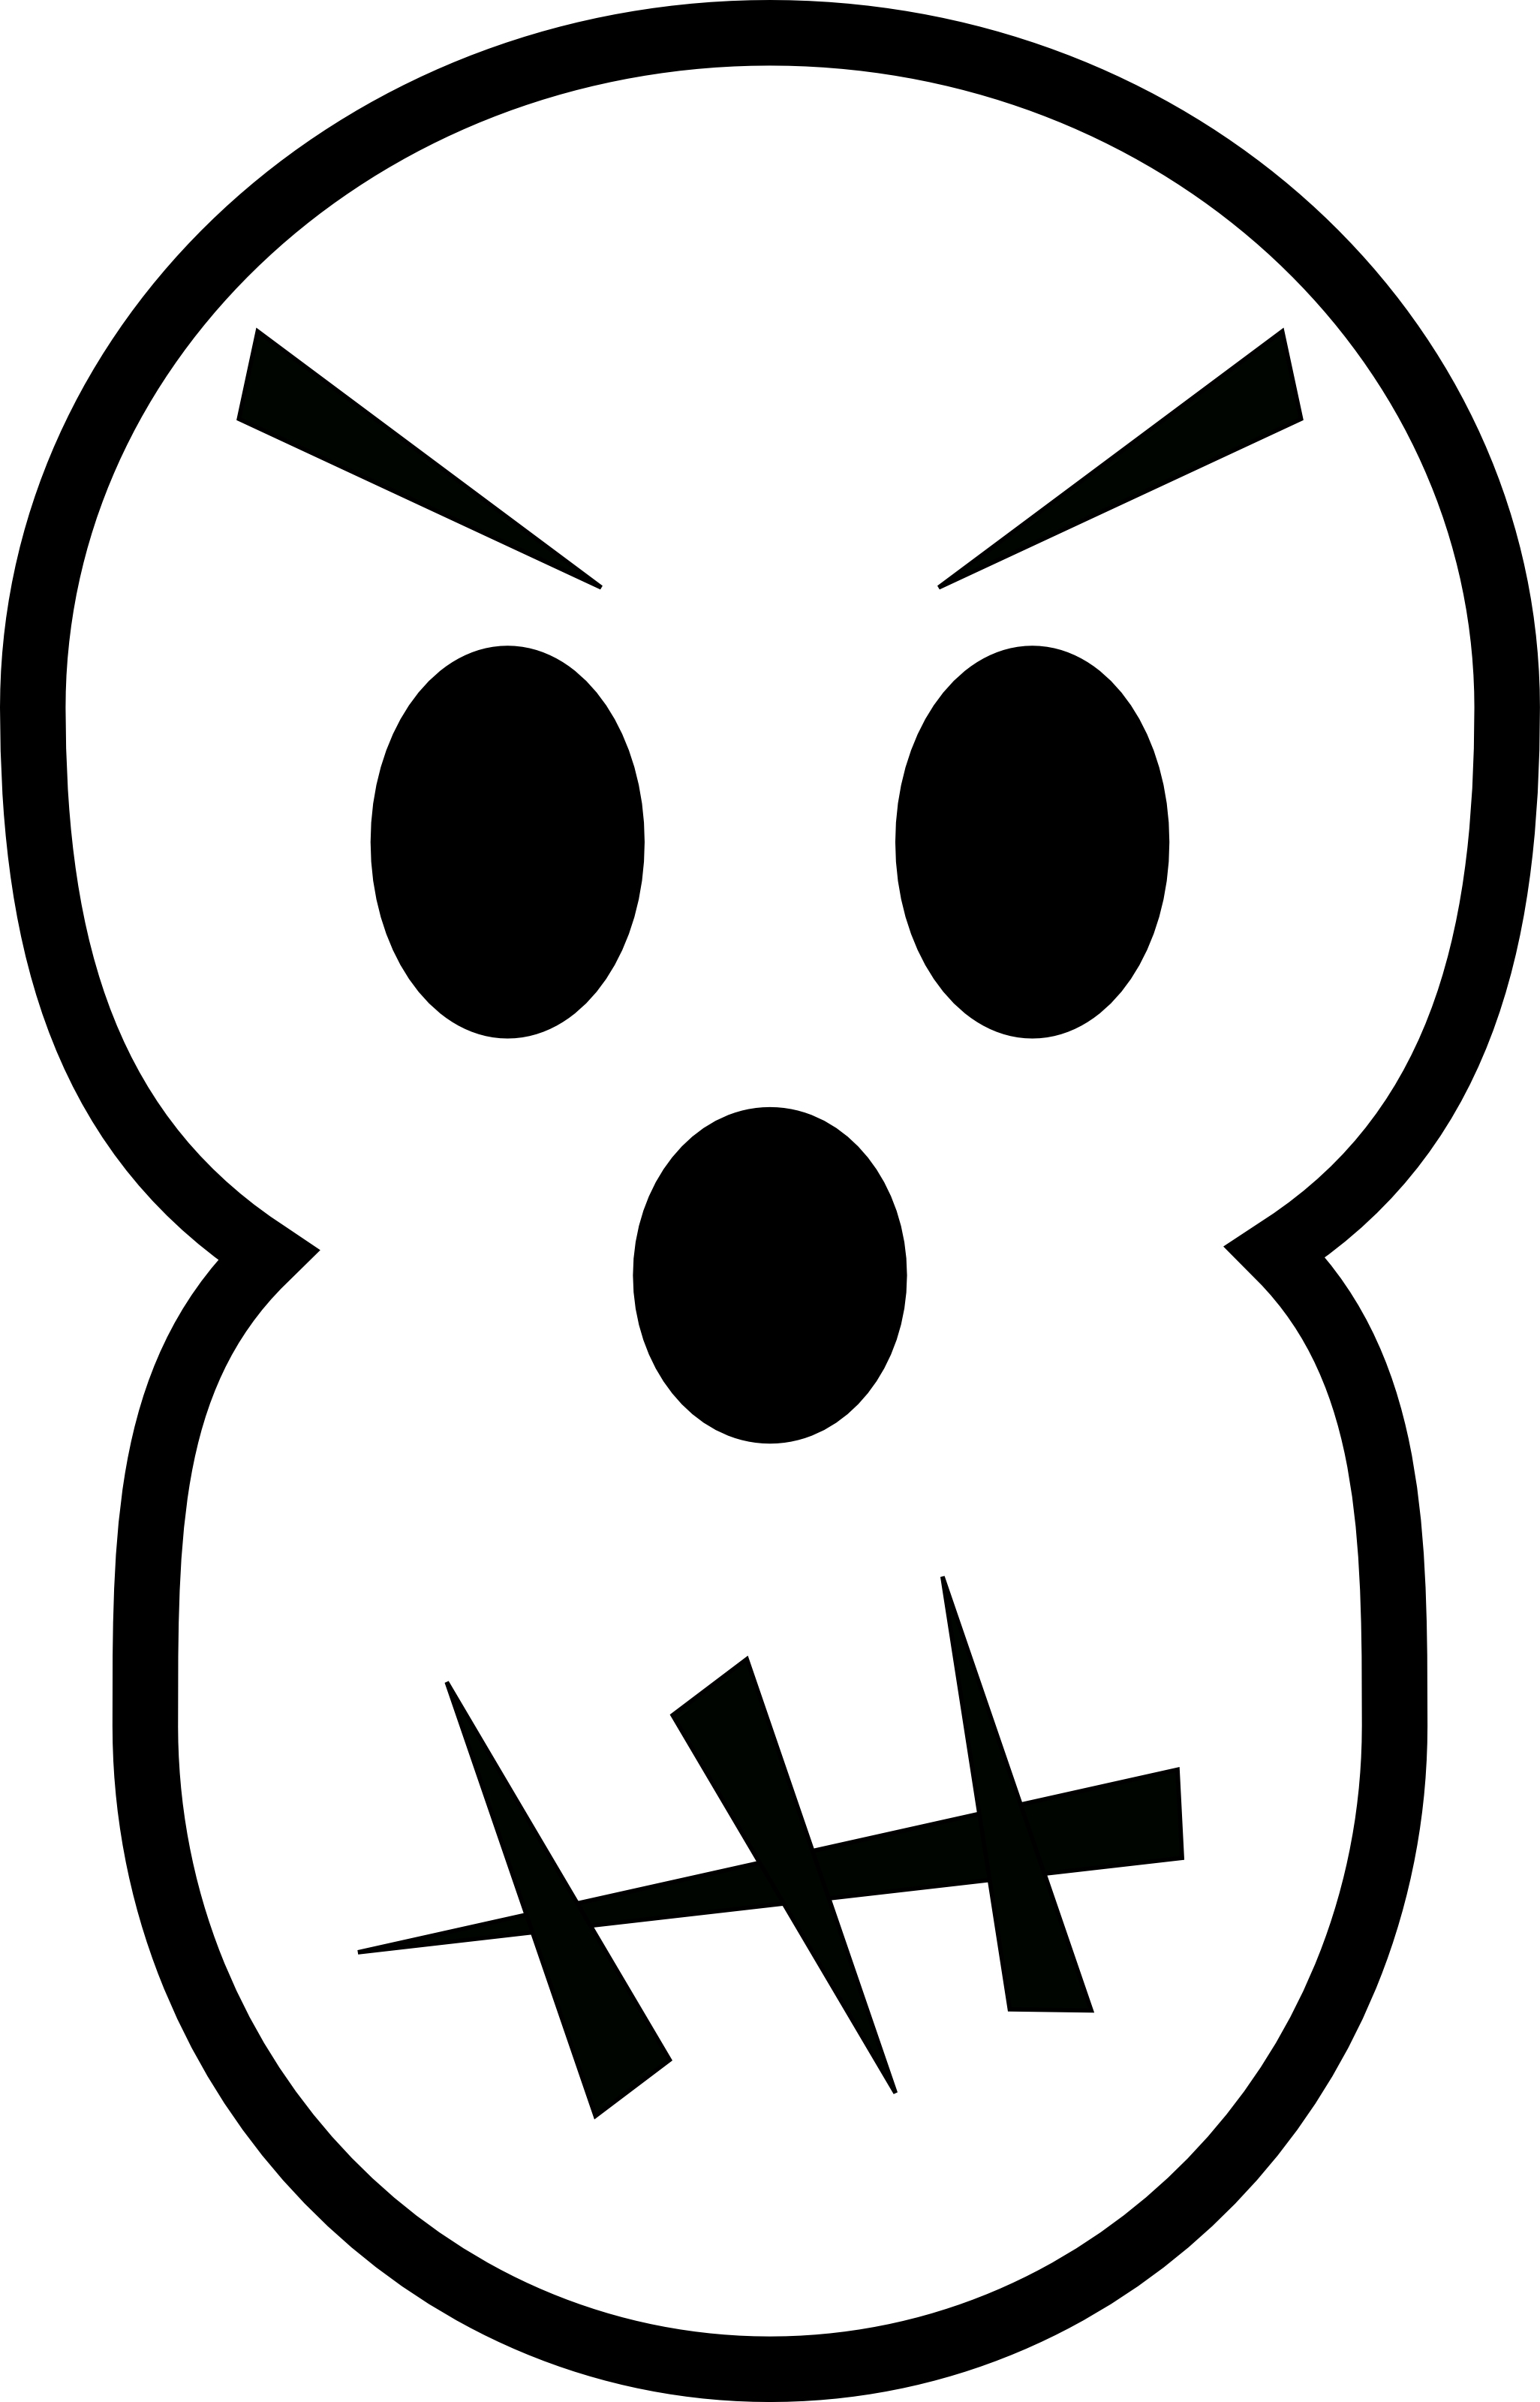 121808364895253946 together with Dancing Skeletons Clip Art 22971 moreover Ghosty in addition Ppcfright2014 Day 10 Finding Casper A Ppc Accounts Friendly Ghost additionally Beaengstigender Zombie Schaedel. on scary ghost faces clip art